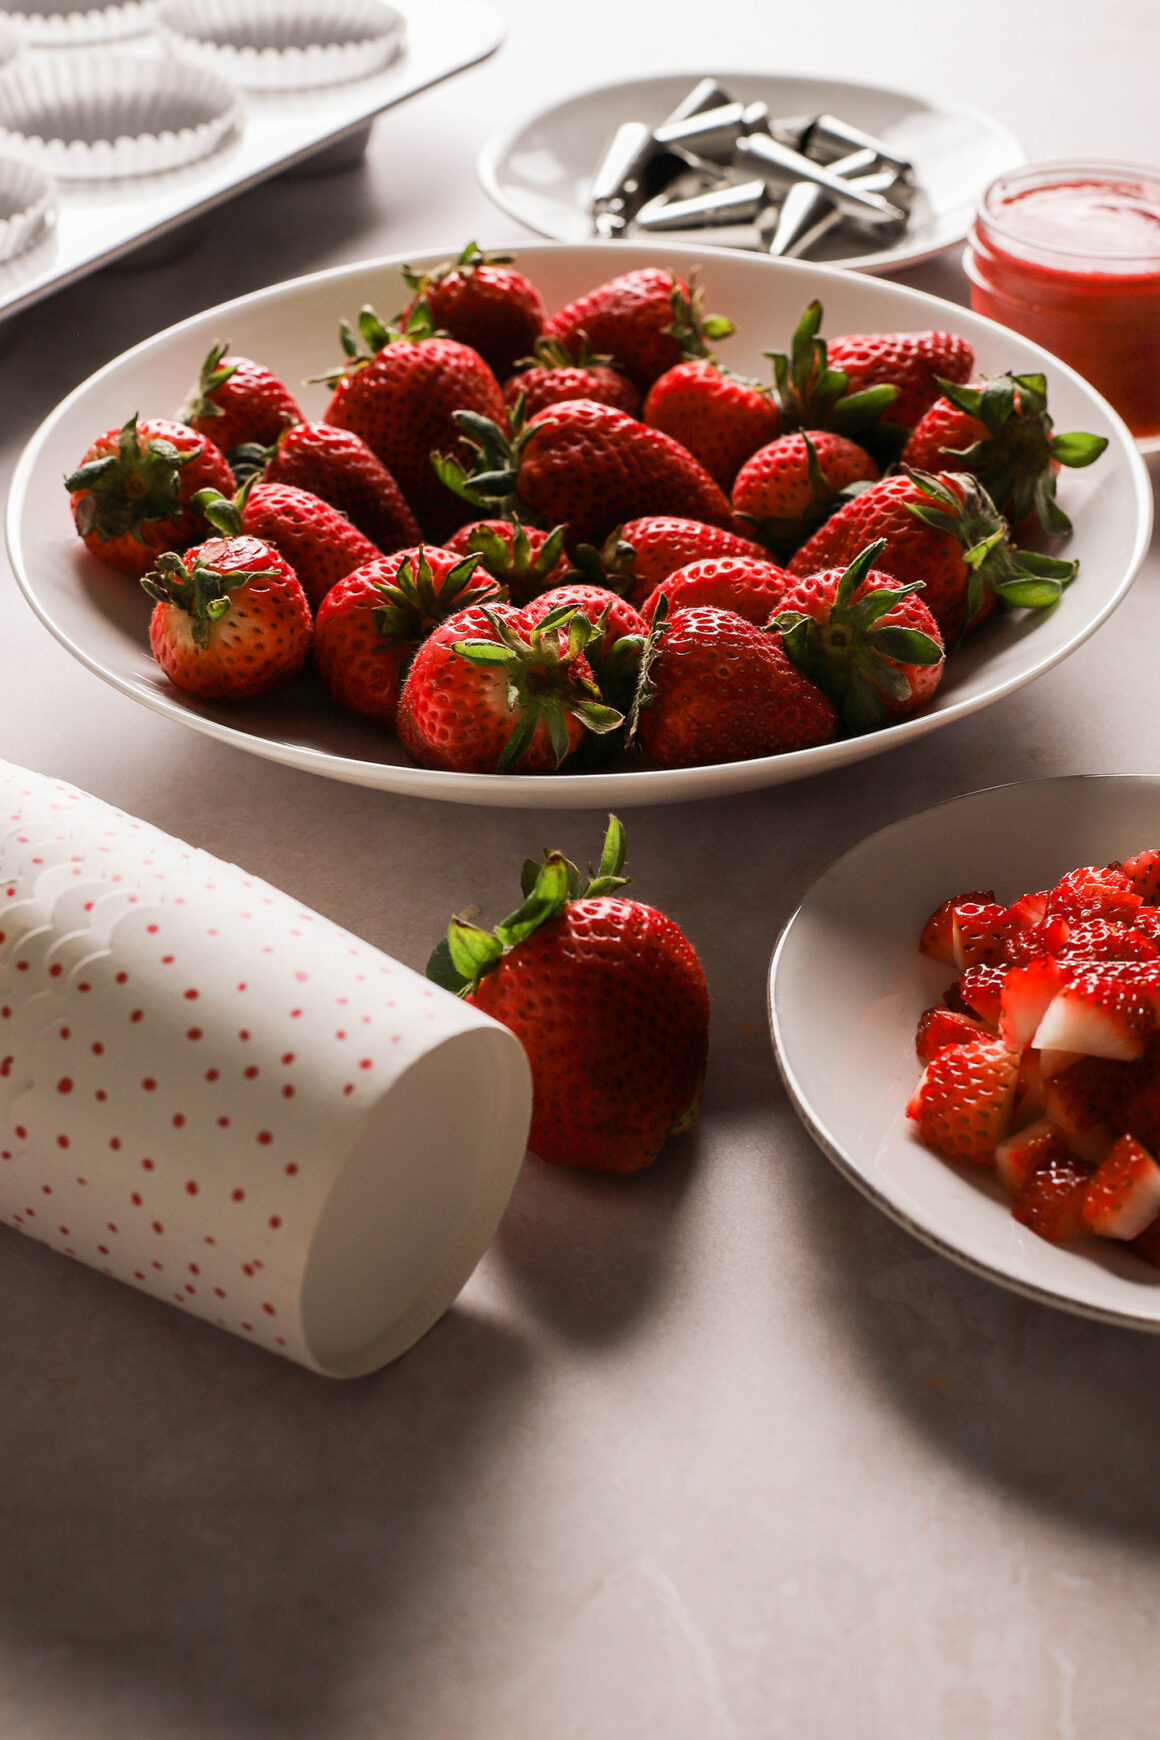 whole and diced fresh strawberries